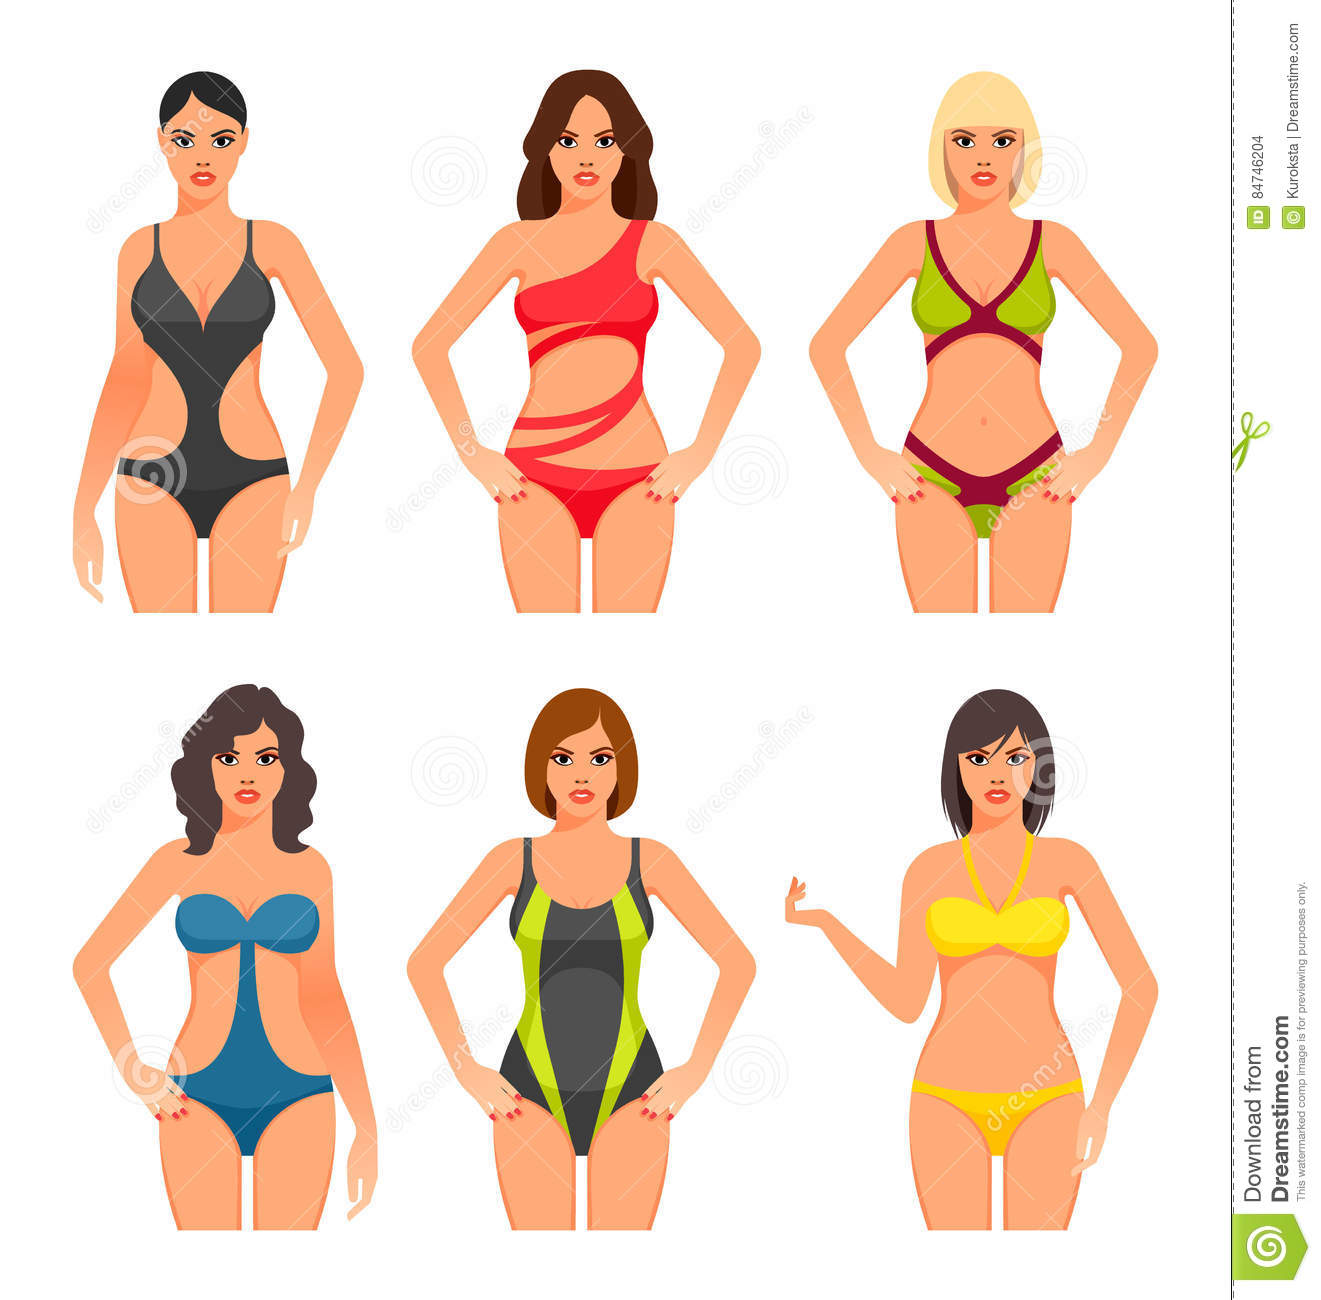 a1a7211d21 Women in swimsuit. stock vector. Illustration of beach - 84746204